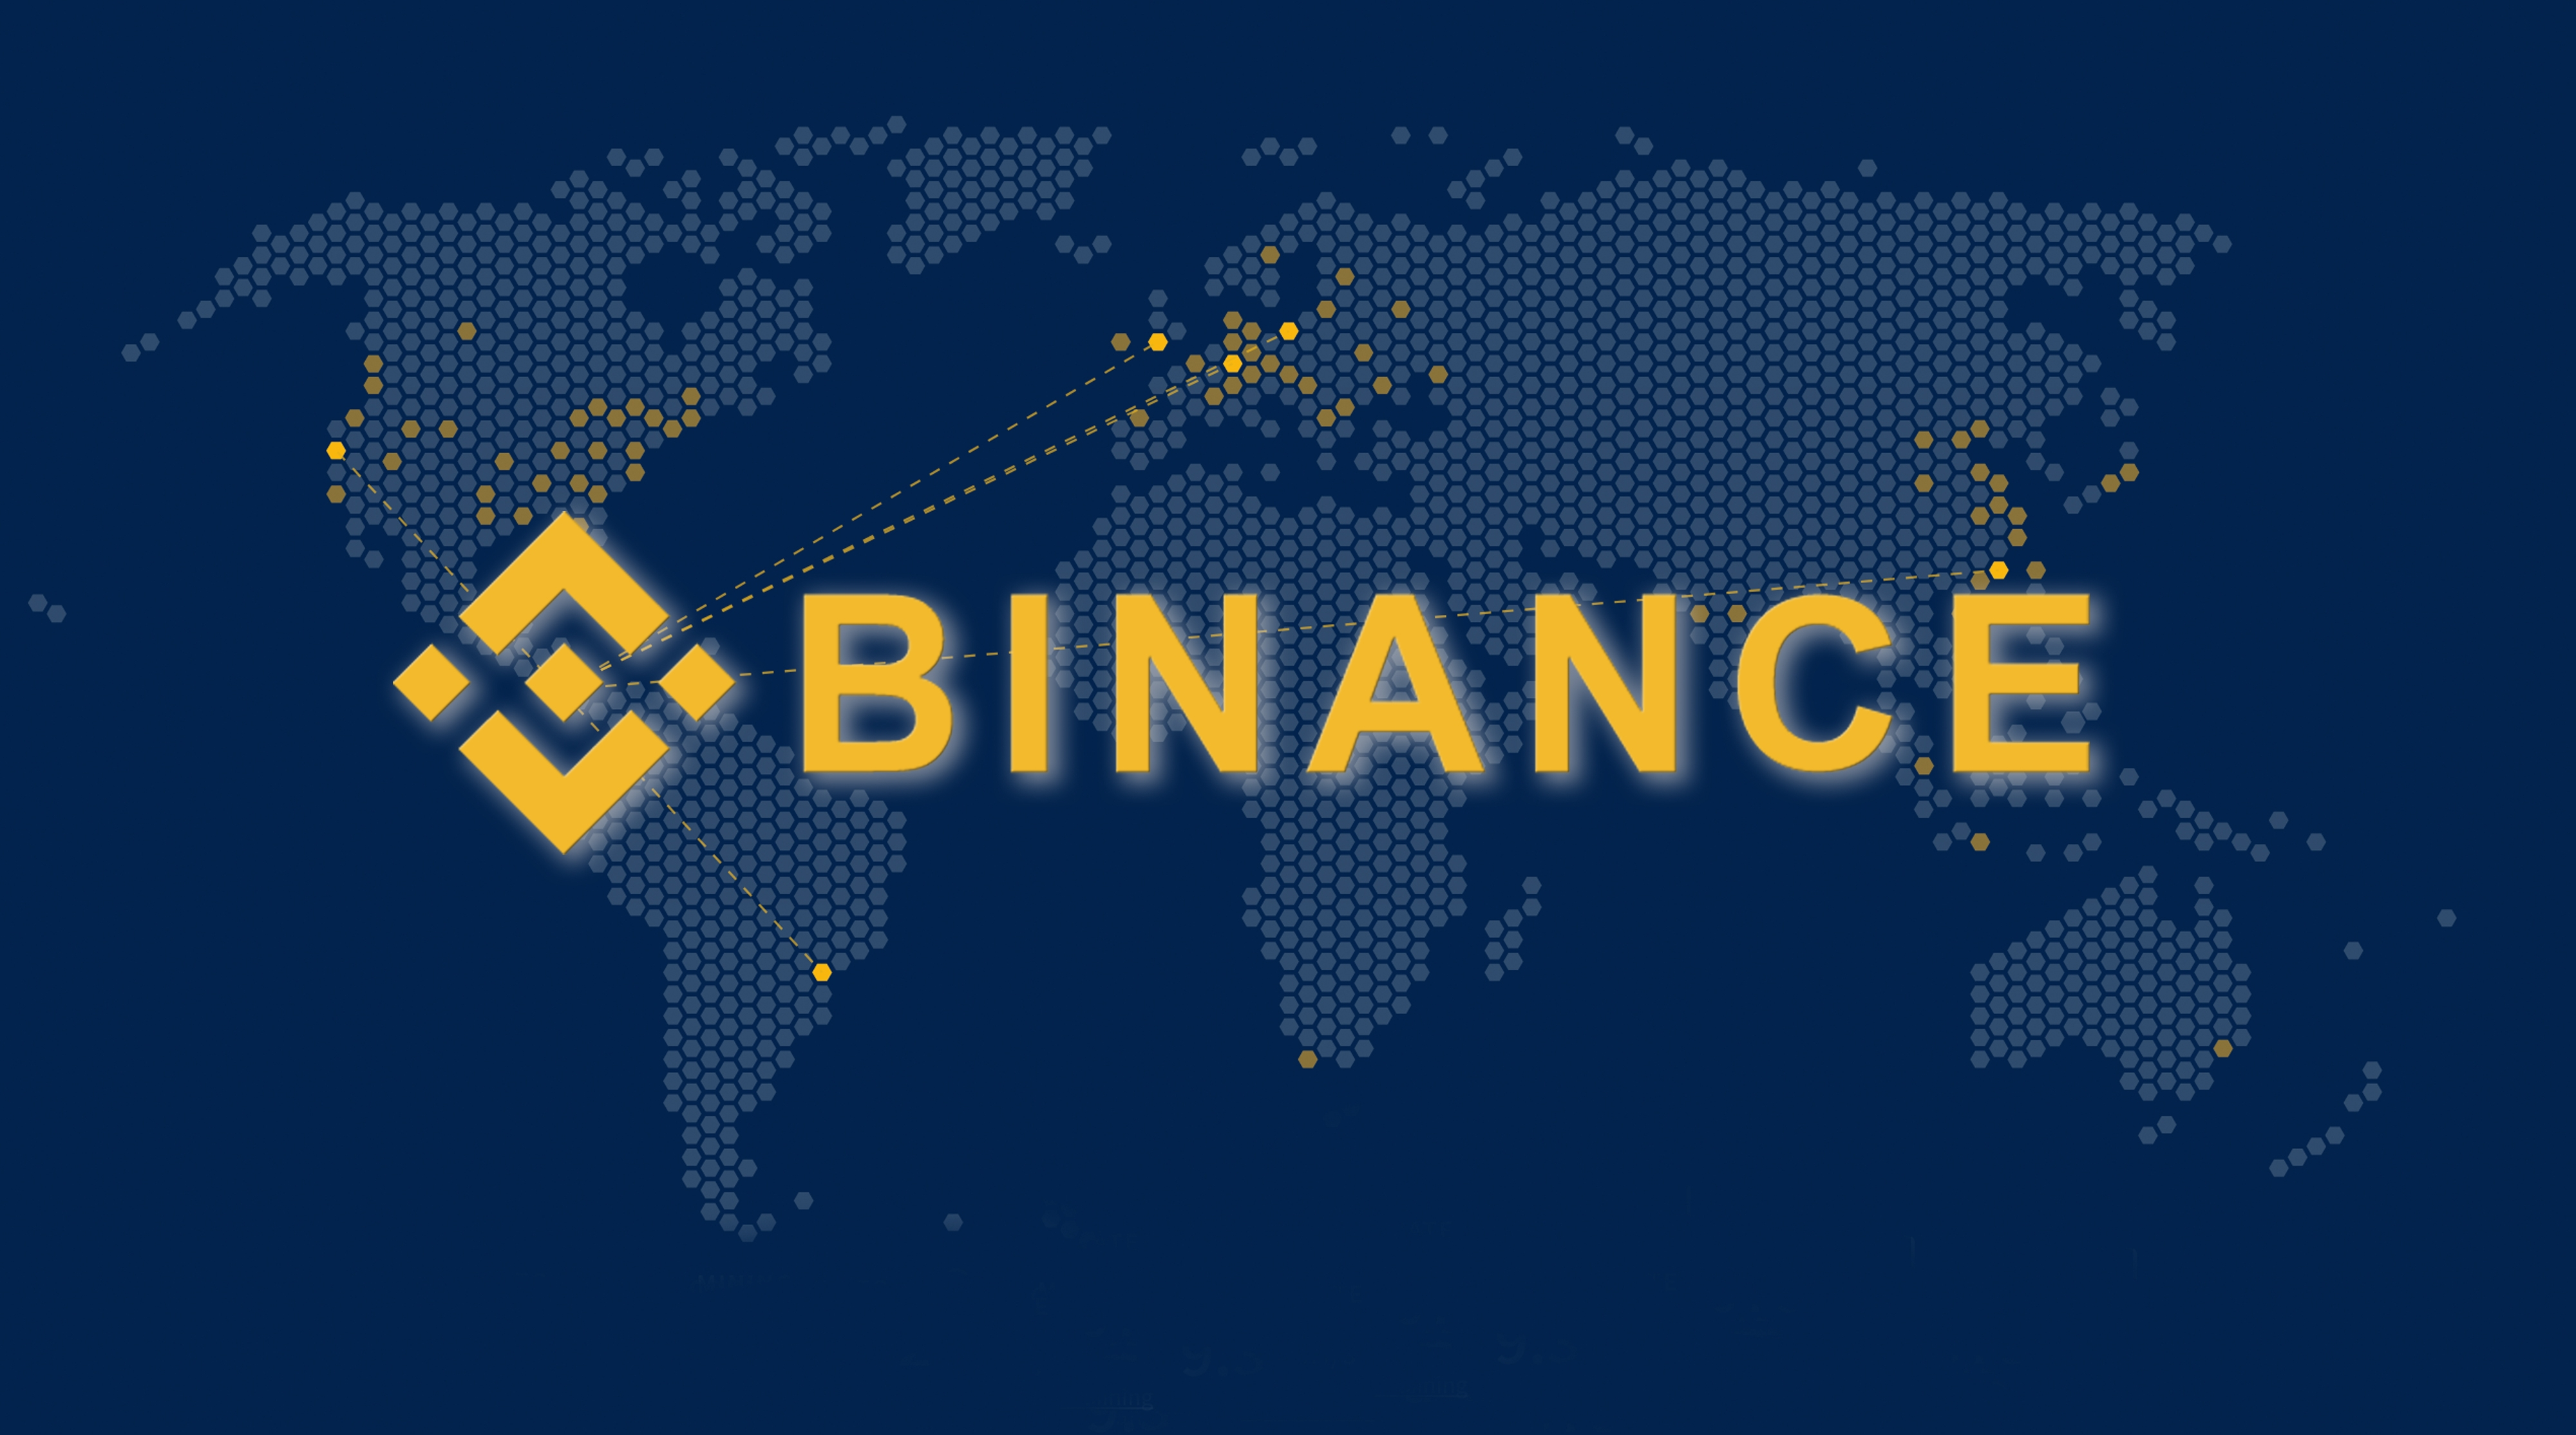 BINANCE HACKER CONTACTS COINDESK